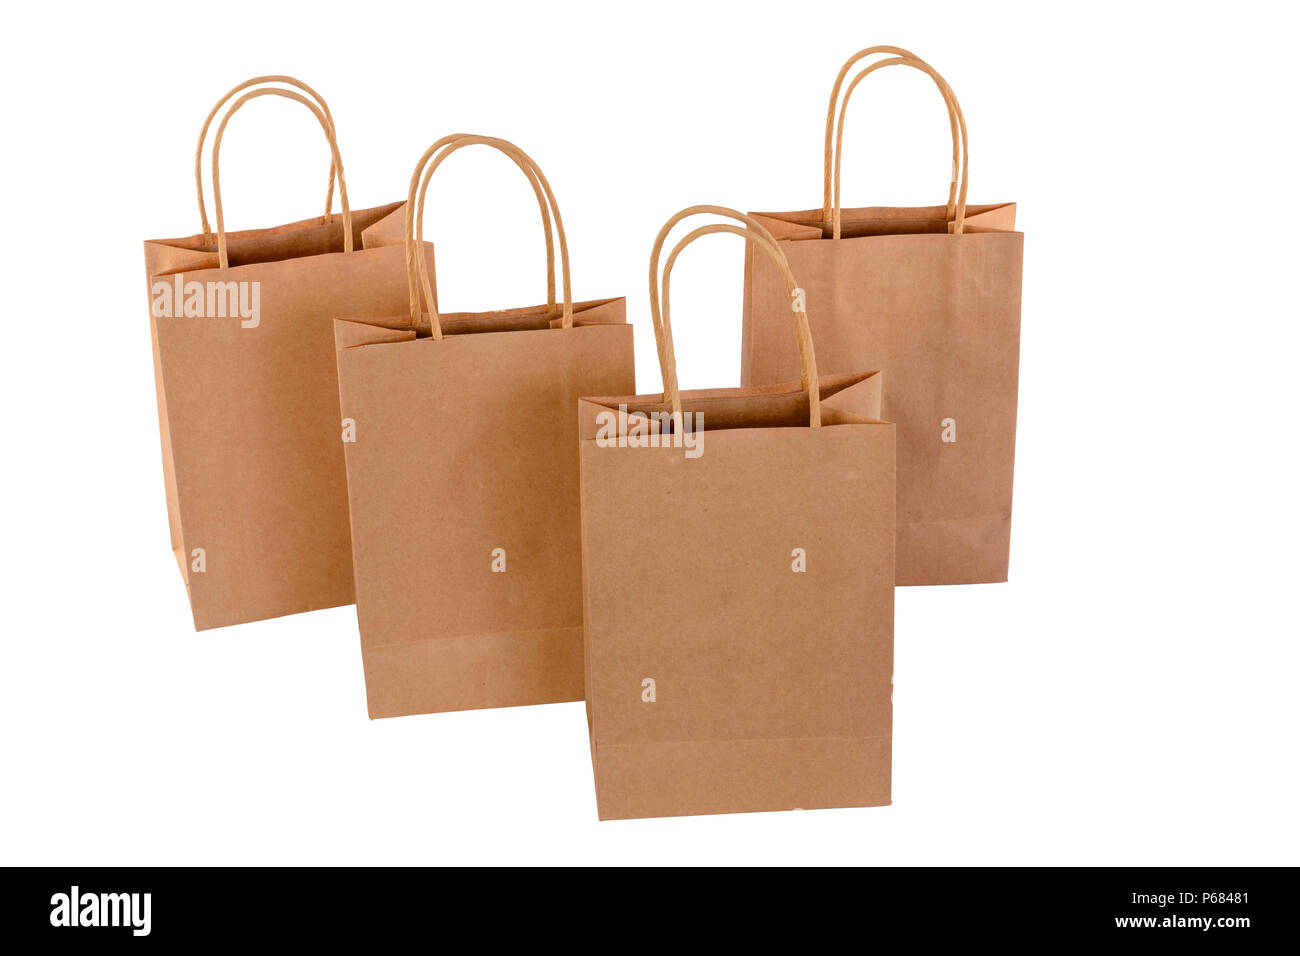 Brown paper shopping bags on white background. Empty area. - Stock Image